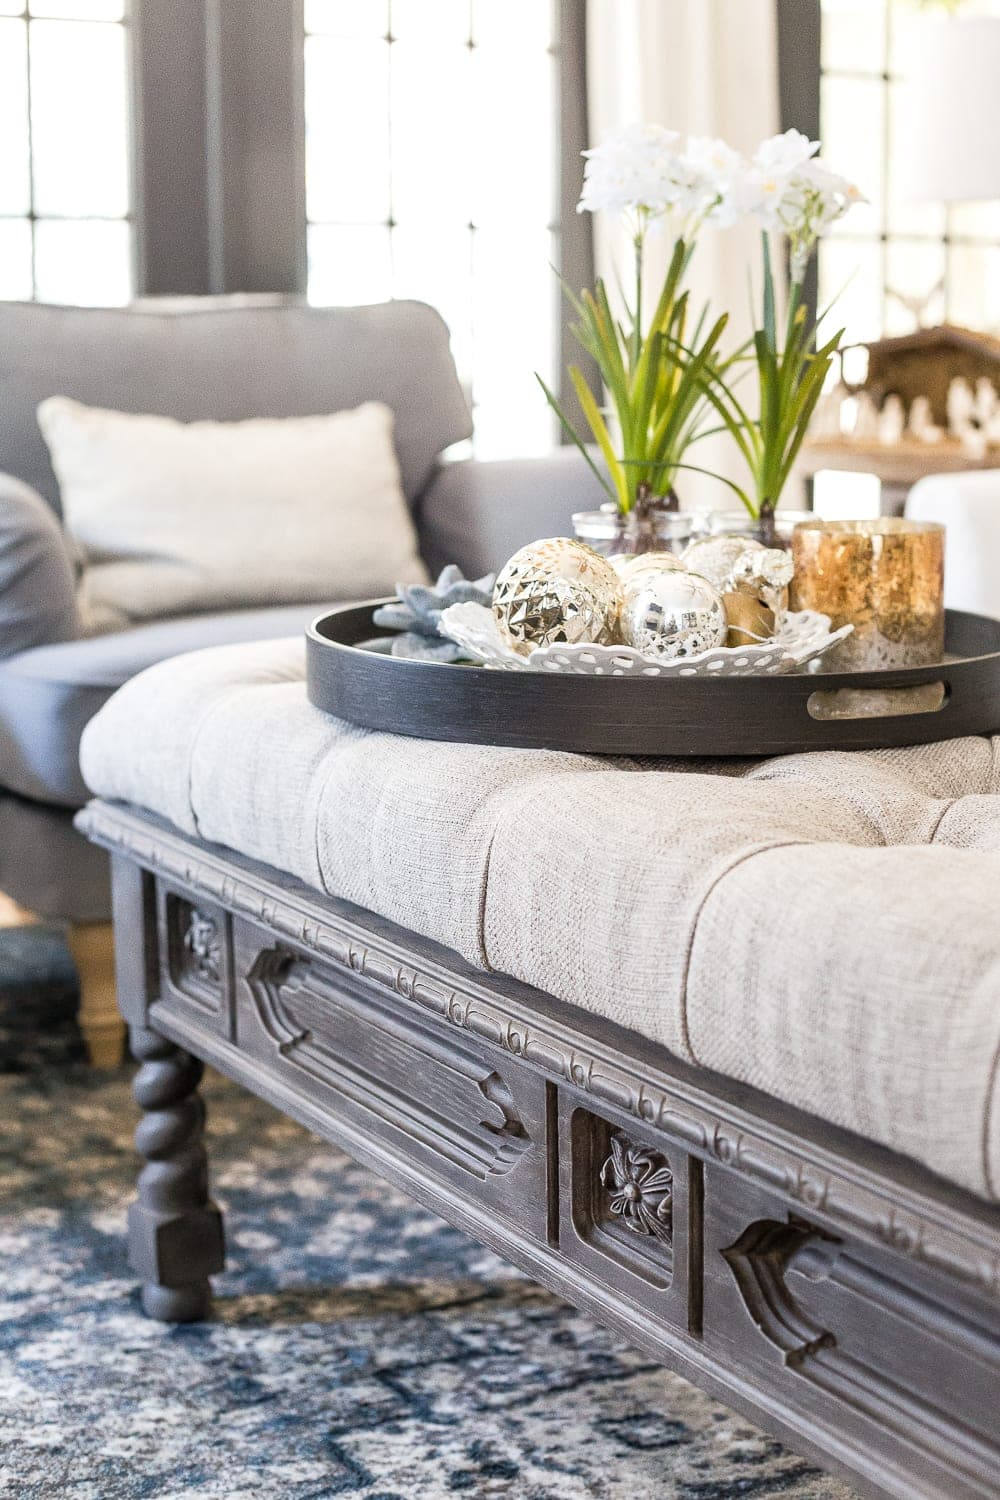 Particular Diy Ottoman Bench From A Repurposed Thrift Store Coffee Table How Diy Ottoman Bench From A Repurposed Coffee Table House Ottoman Coffee Table Ideas Ottoman Coffee Table Amazon houzz-03 Ottoman Coffee Table